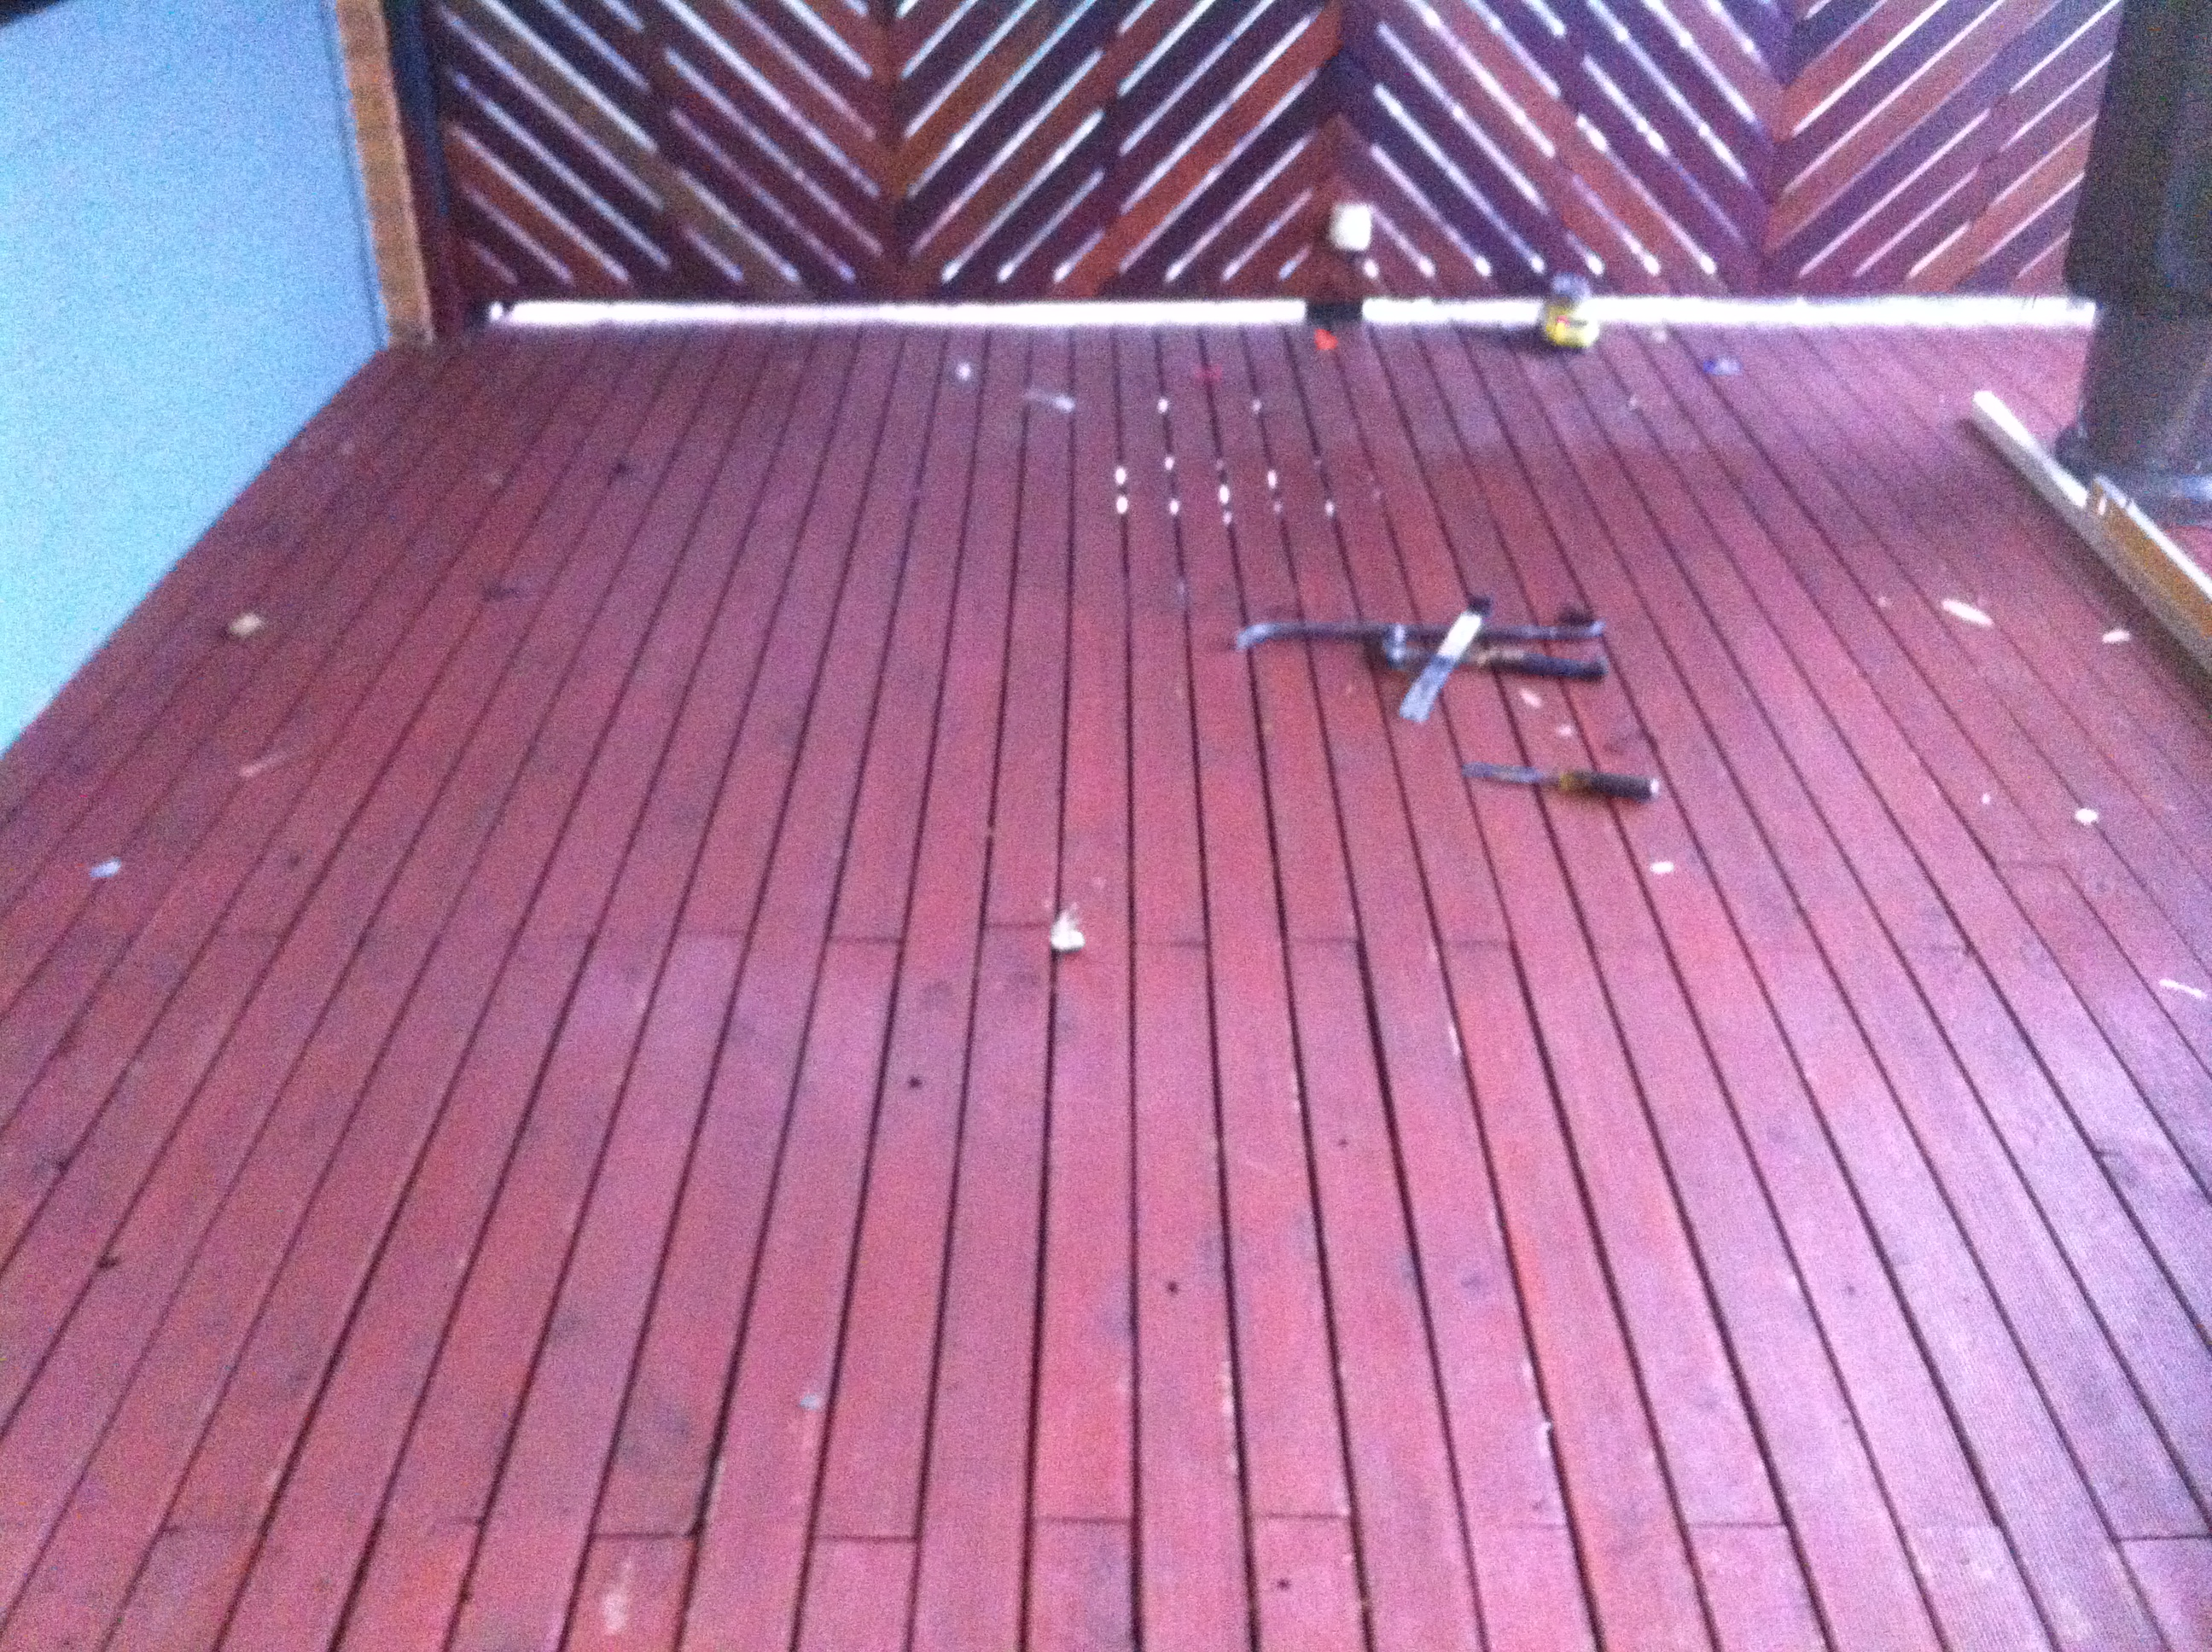 Decking boards badly joined in the same spot